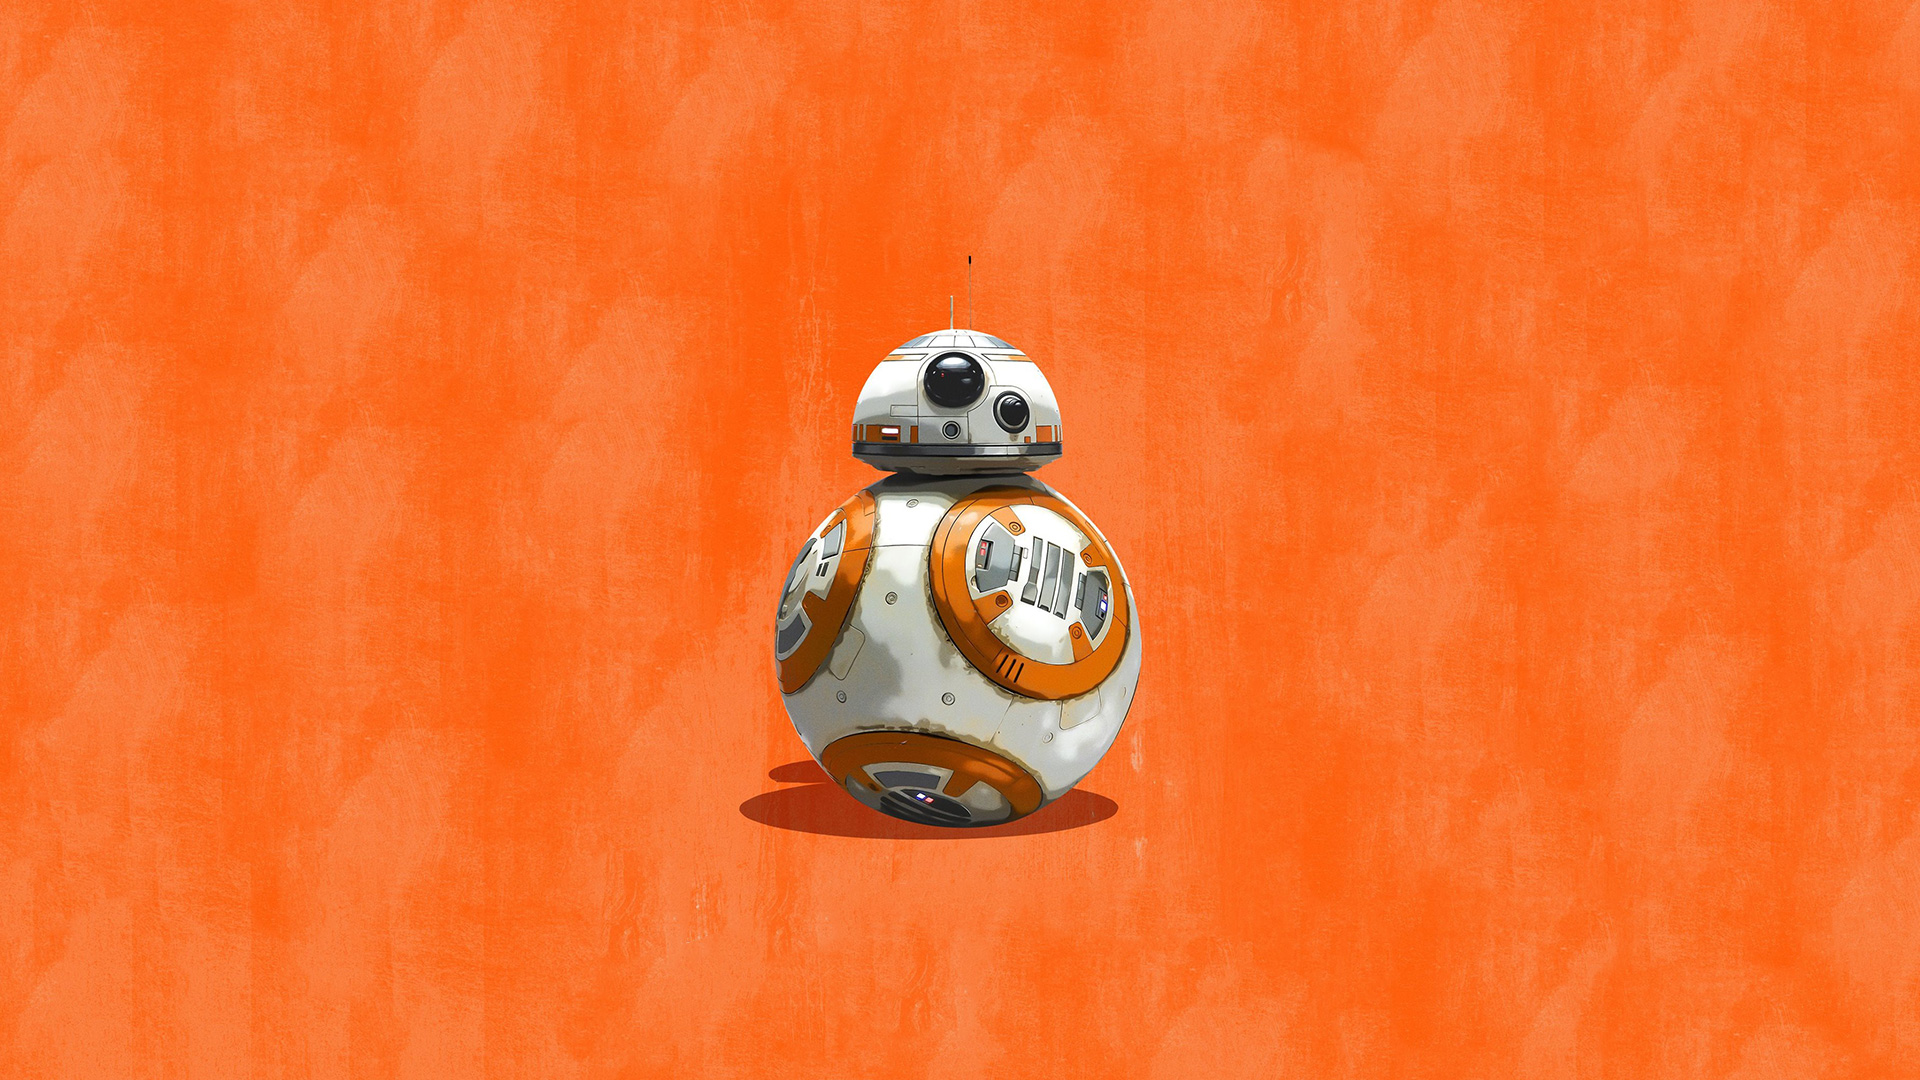 2560x1440 Bb8 Star Wars The Last Jedi 1440p Resolution Hd 4k Wallpapers Images Backgrounds Photos And Pictures